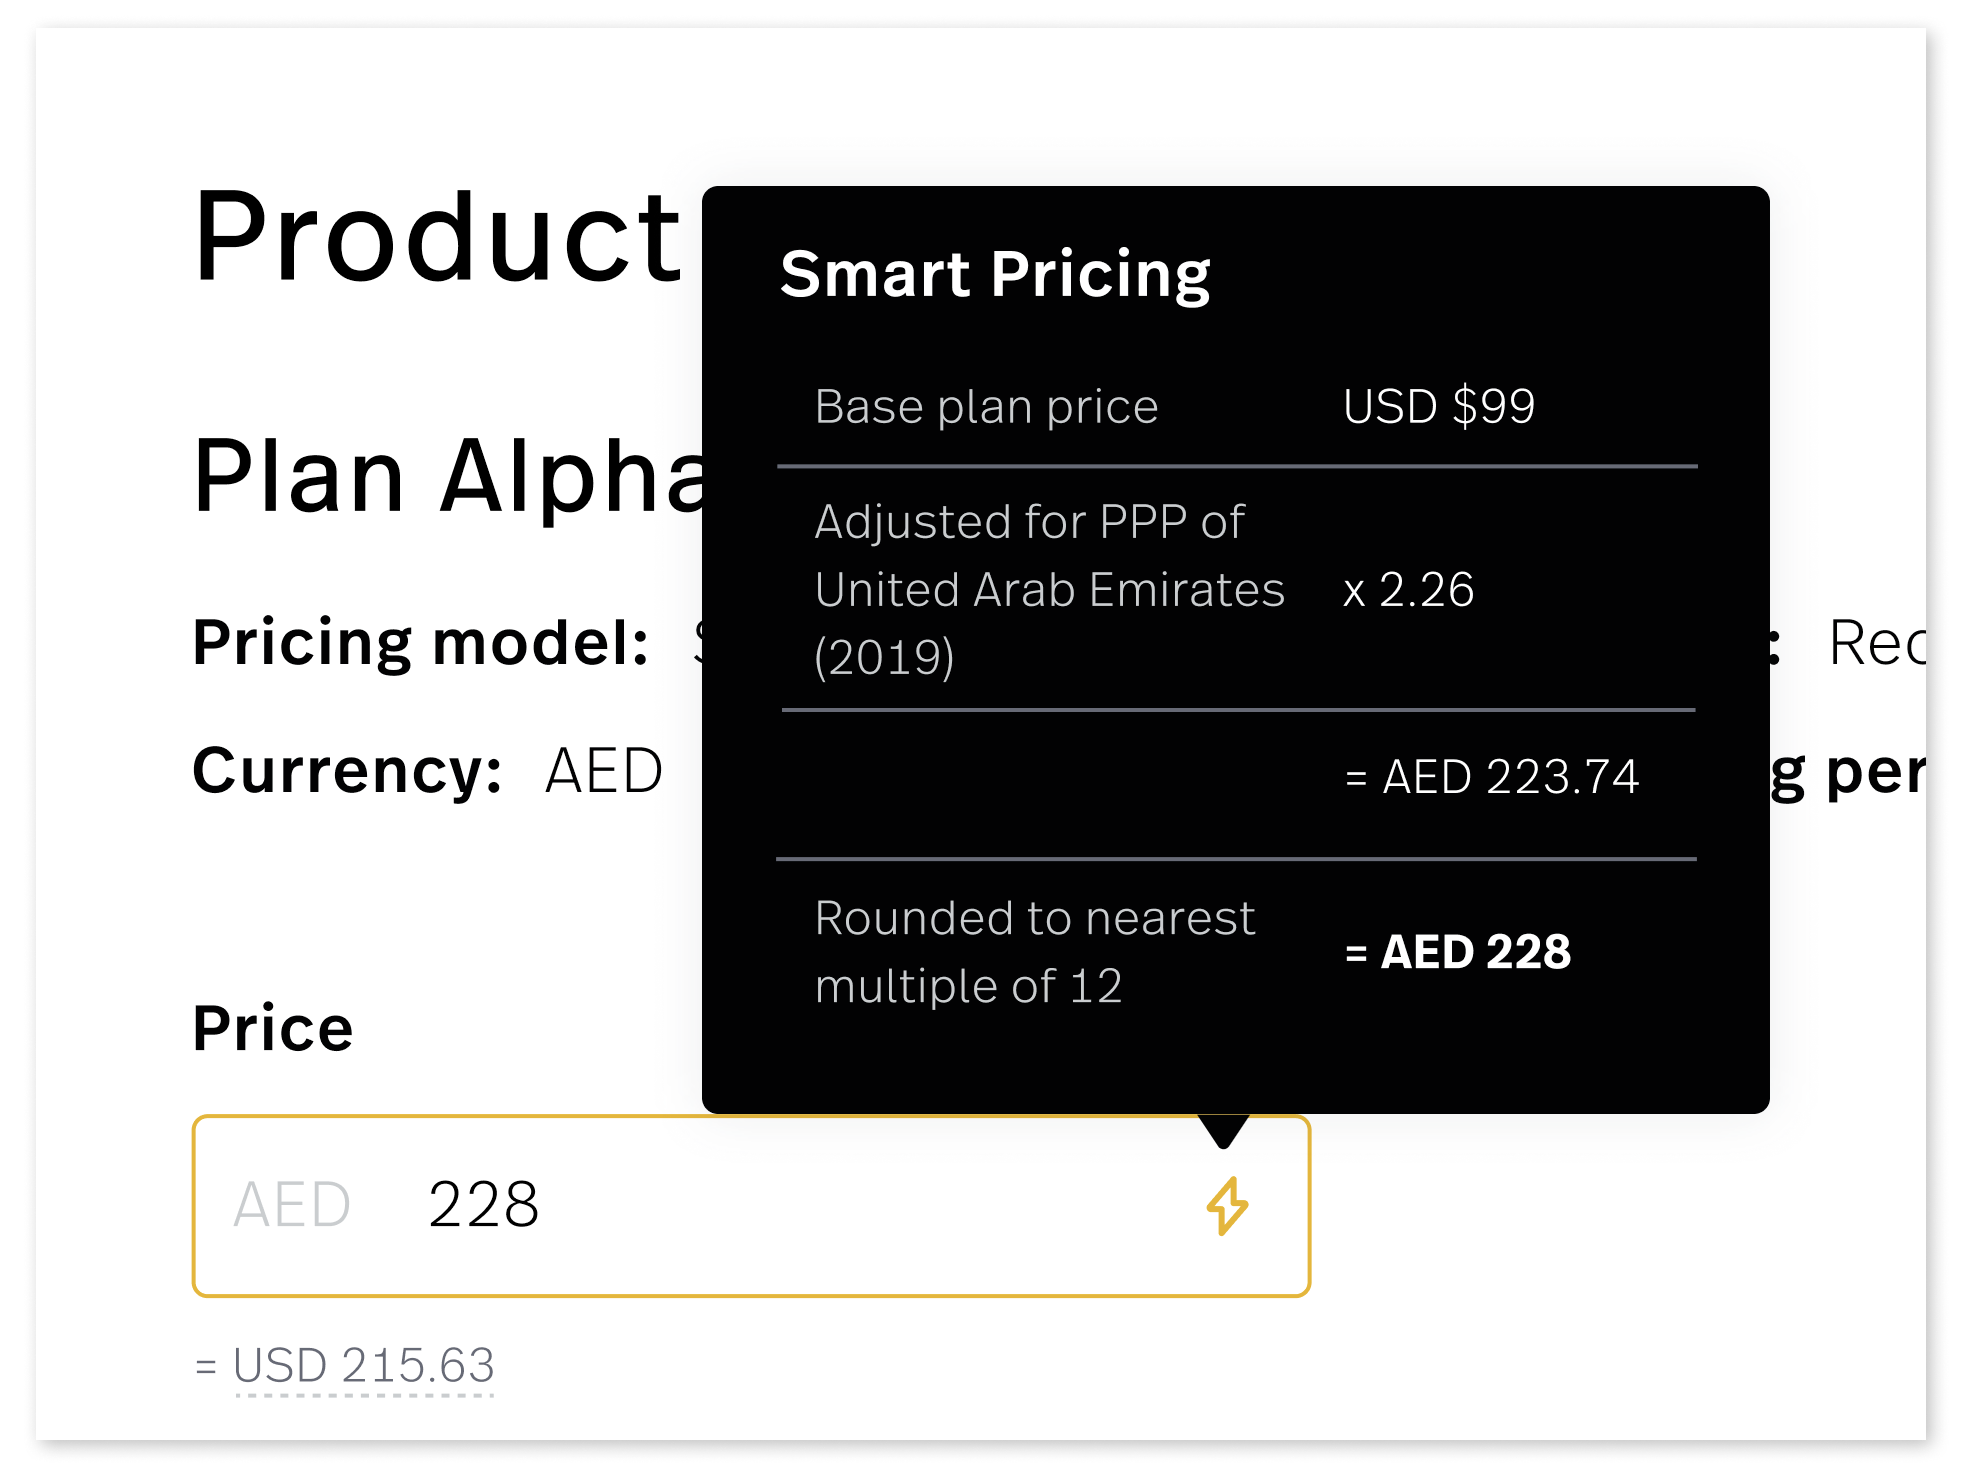 When designing your pricing, it's helpful to research current exchange rates and PPP — and to consider factors like even divisibility and charm pricing.  Haiku® Optimizer's Smart Pricing feature brings all of this data to your fingertips.